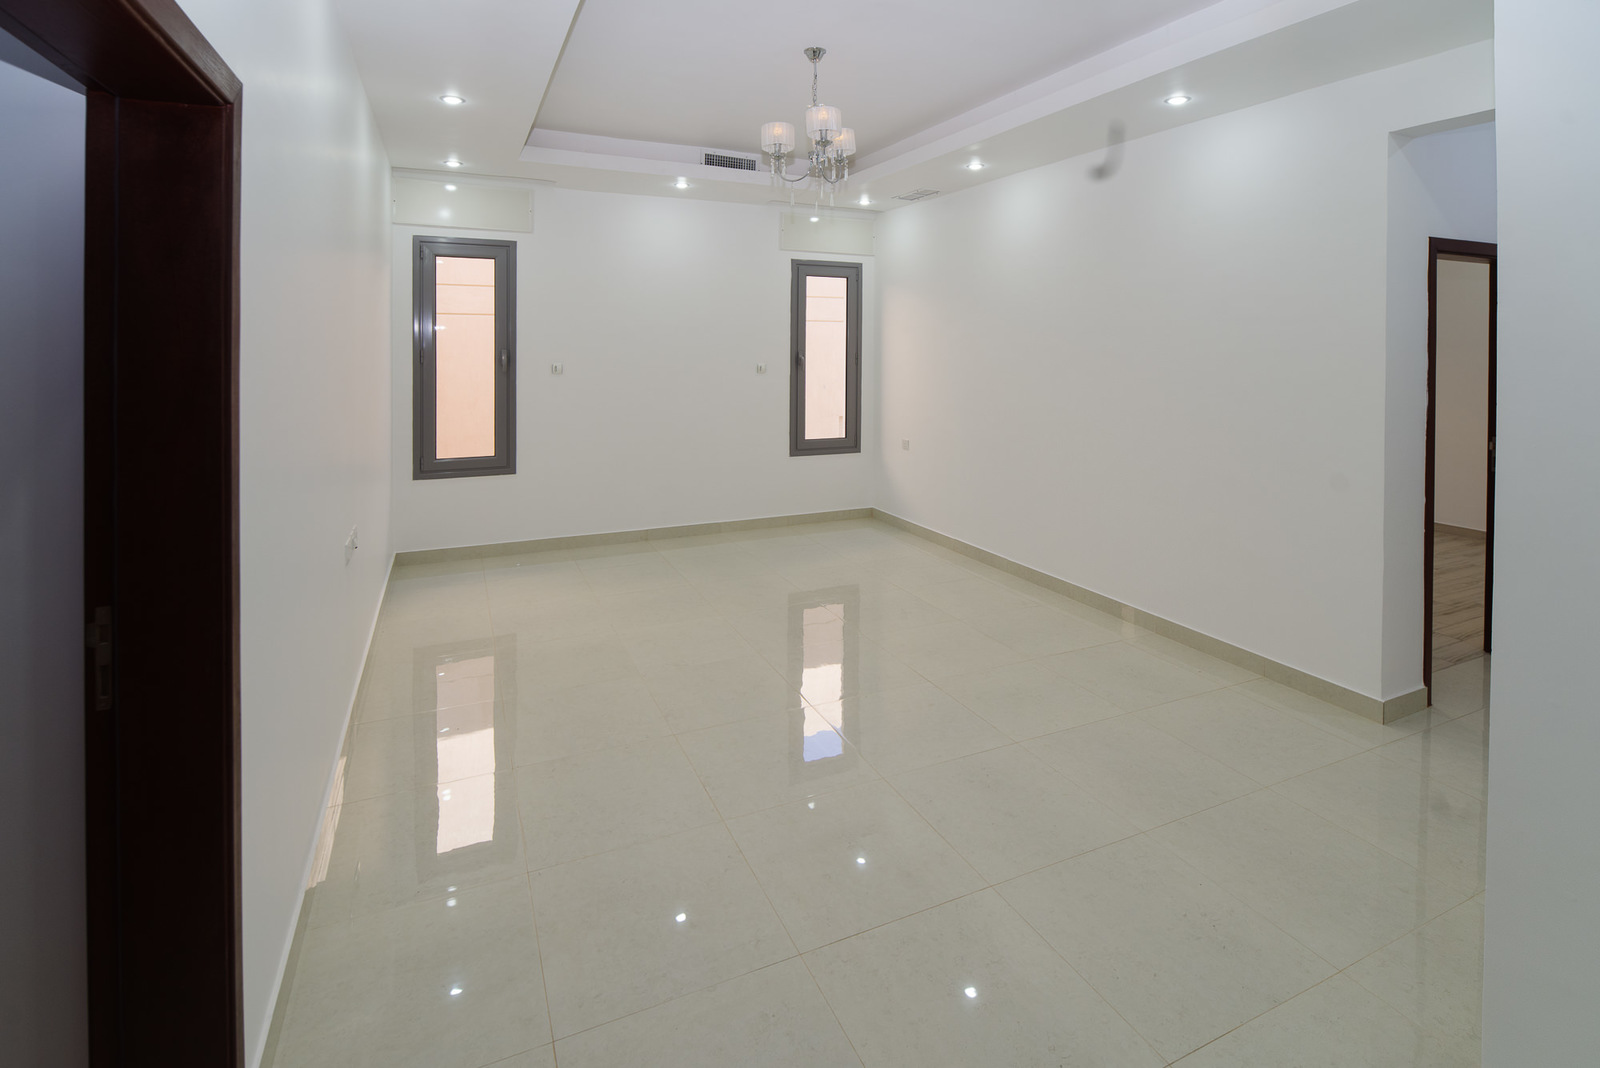 Abu Fatira – new, unfurnished, three bedroom apartments